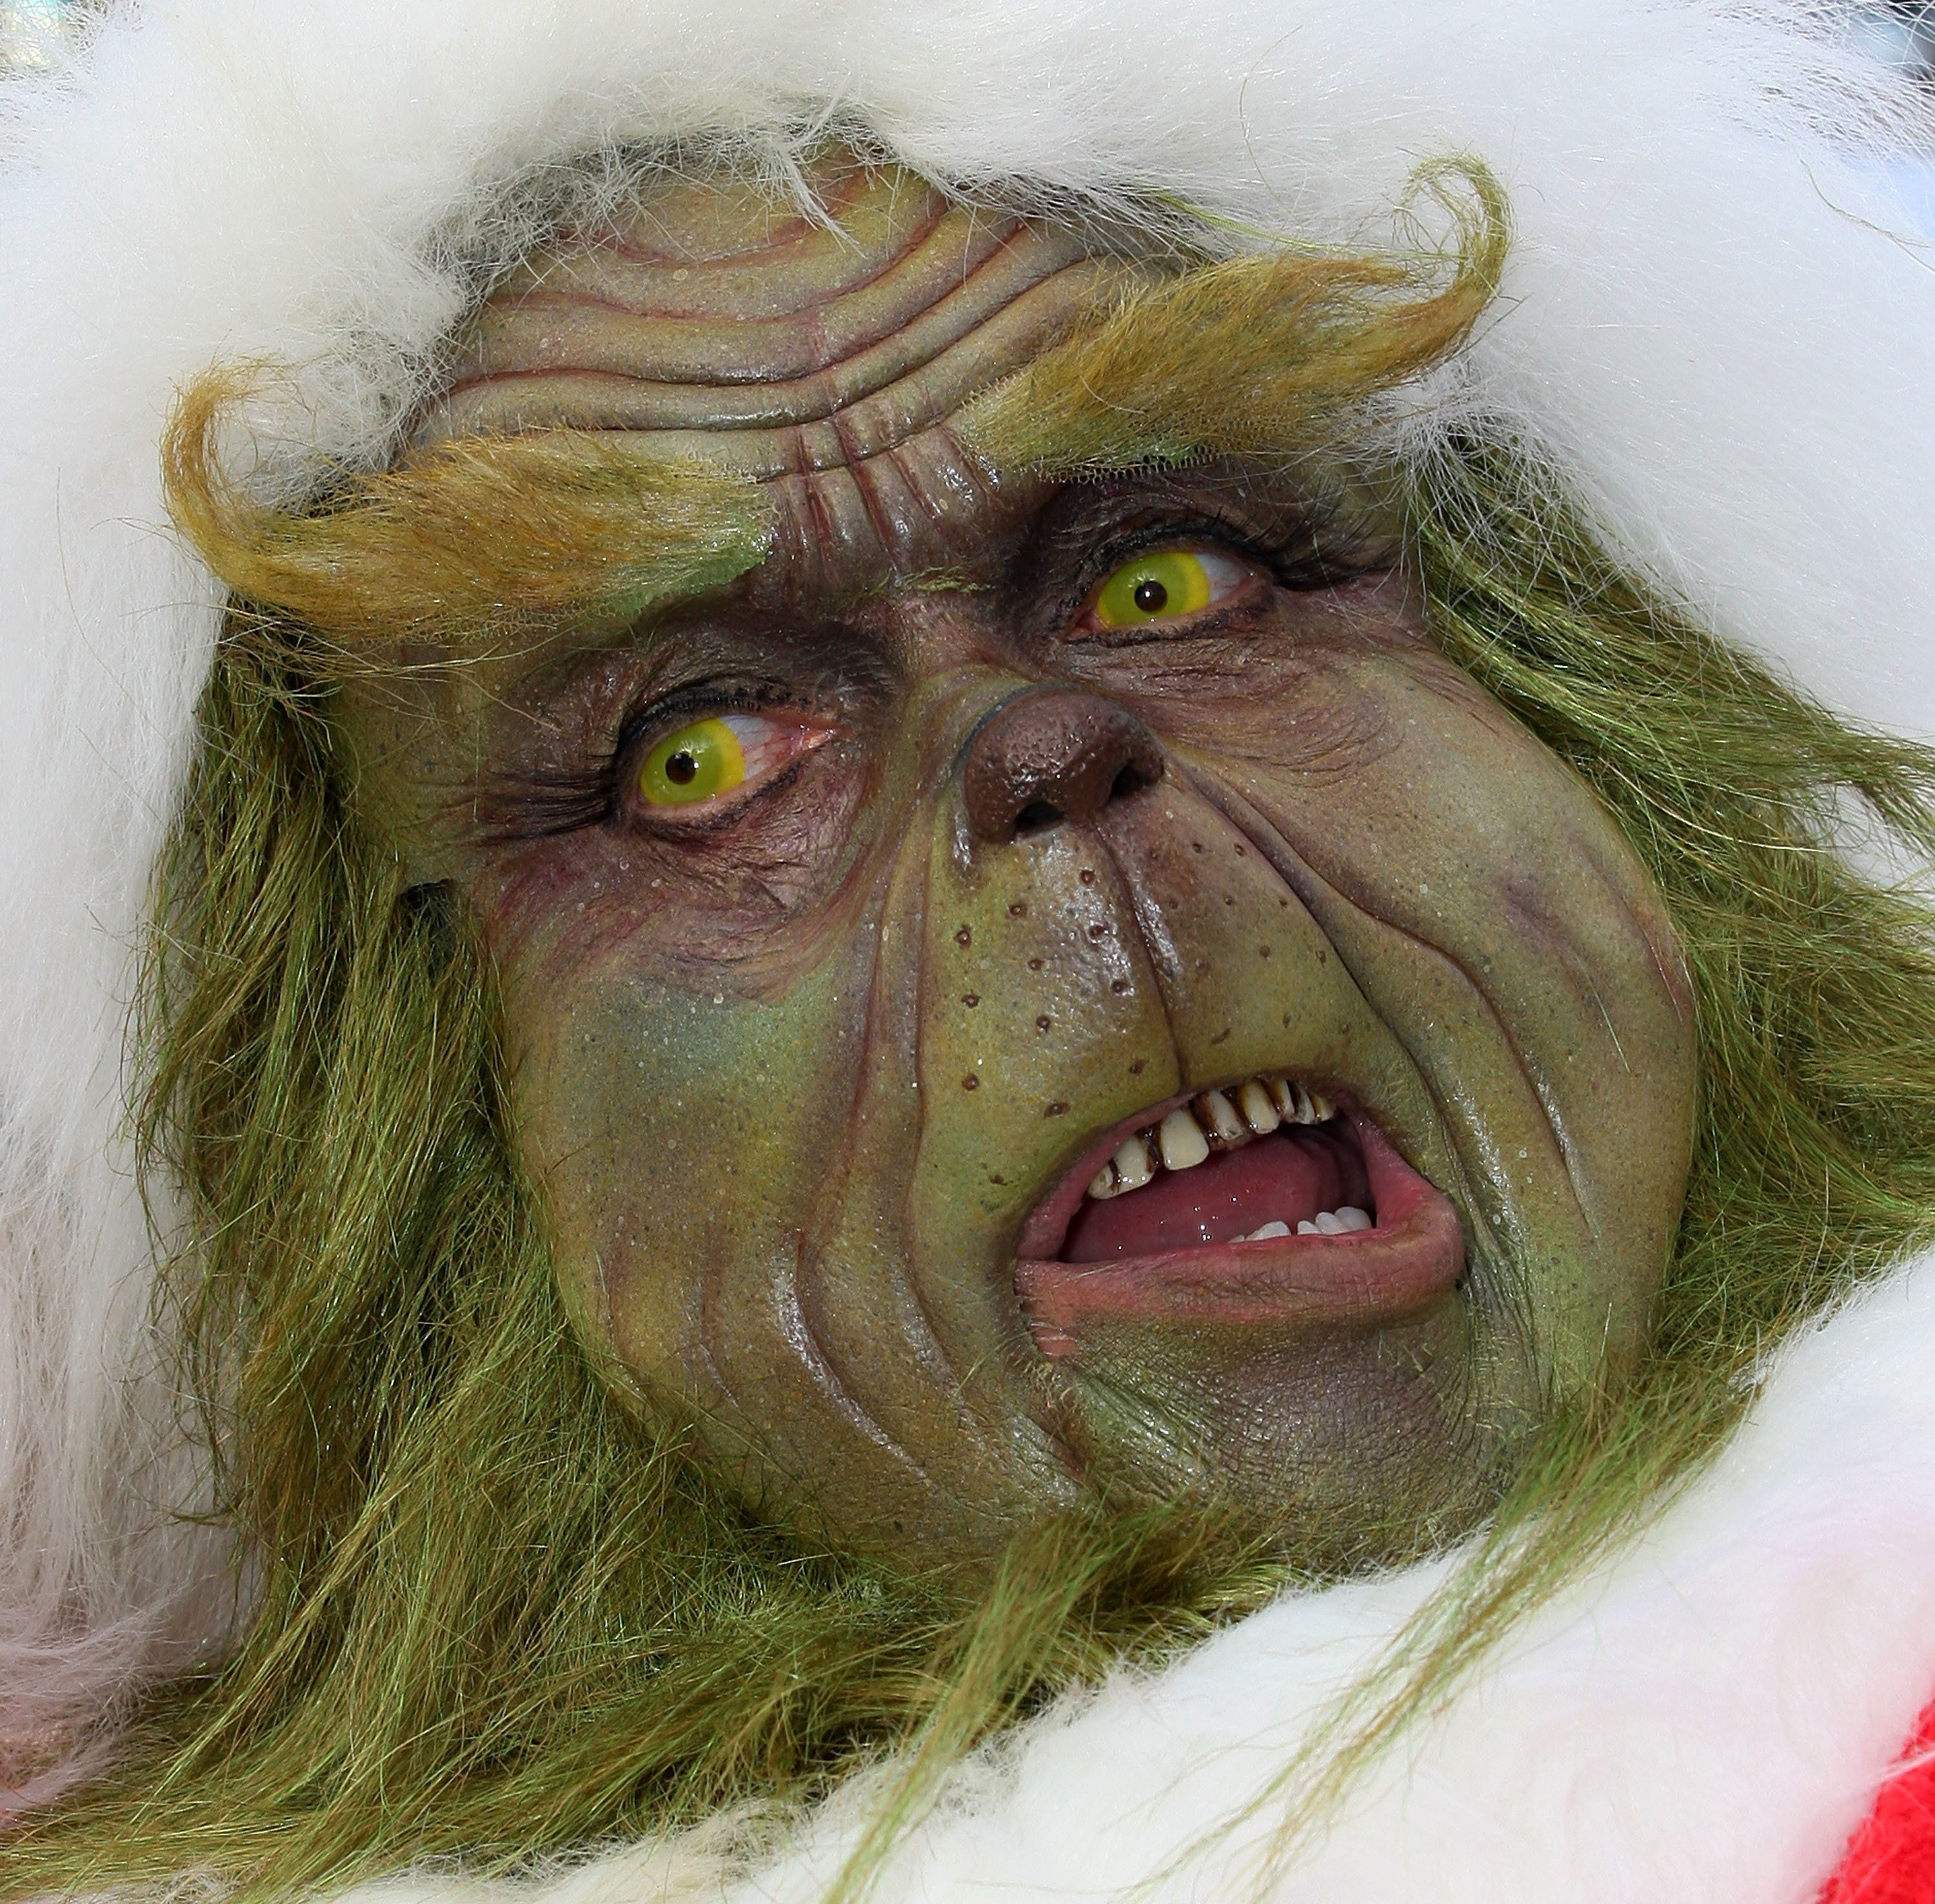 UNIVERSAL CITY, CA - DECEMBER 17: The Grinch, a Universal Studios character, launches the '13 Days of Grinchmas' on December 17, 2009 in Universal City, California.  (Photo by Frederick M. Brown/Getty Images)